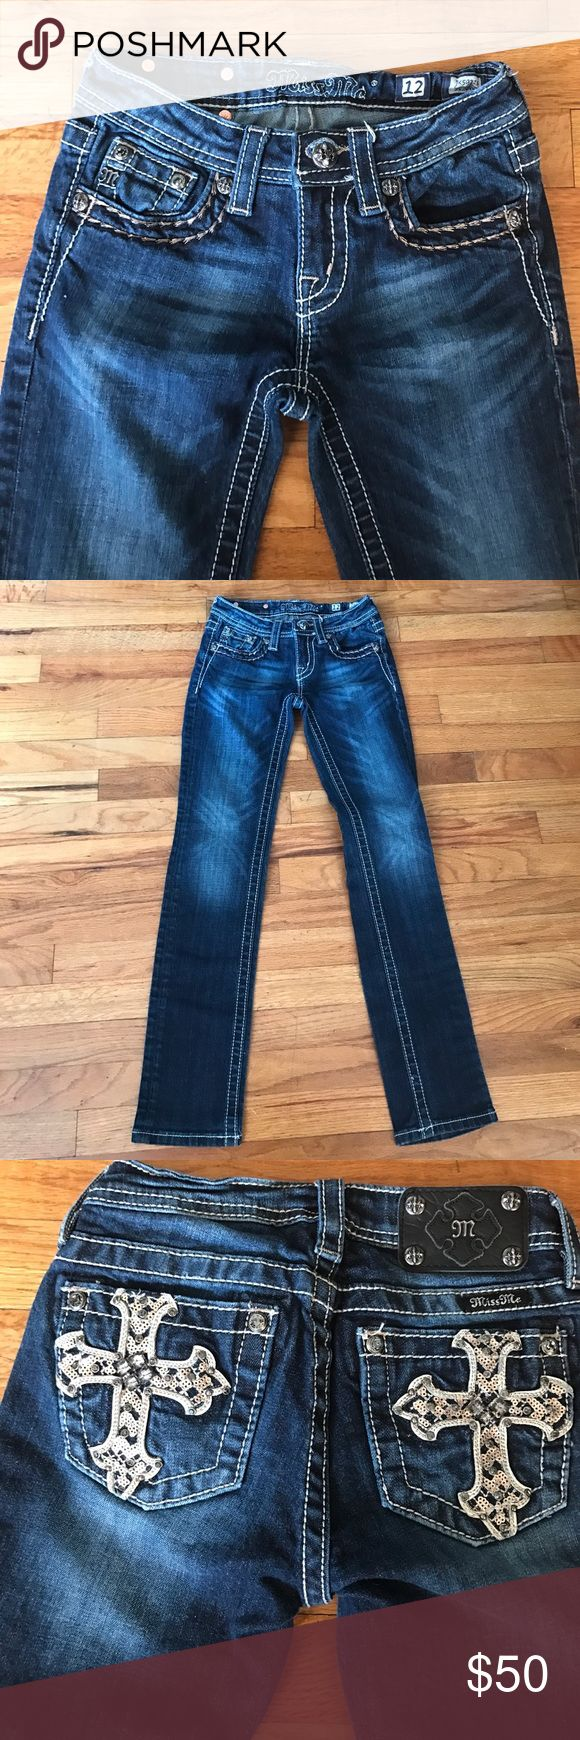 Girl's Miss Me Jeans Girl's Miss Me skinny jeans. Super cute with back pockets blinged crosses (sequins & stones). Size 12. *no trades* Miss Me Bottoms Jeans